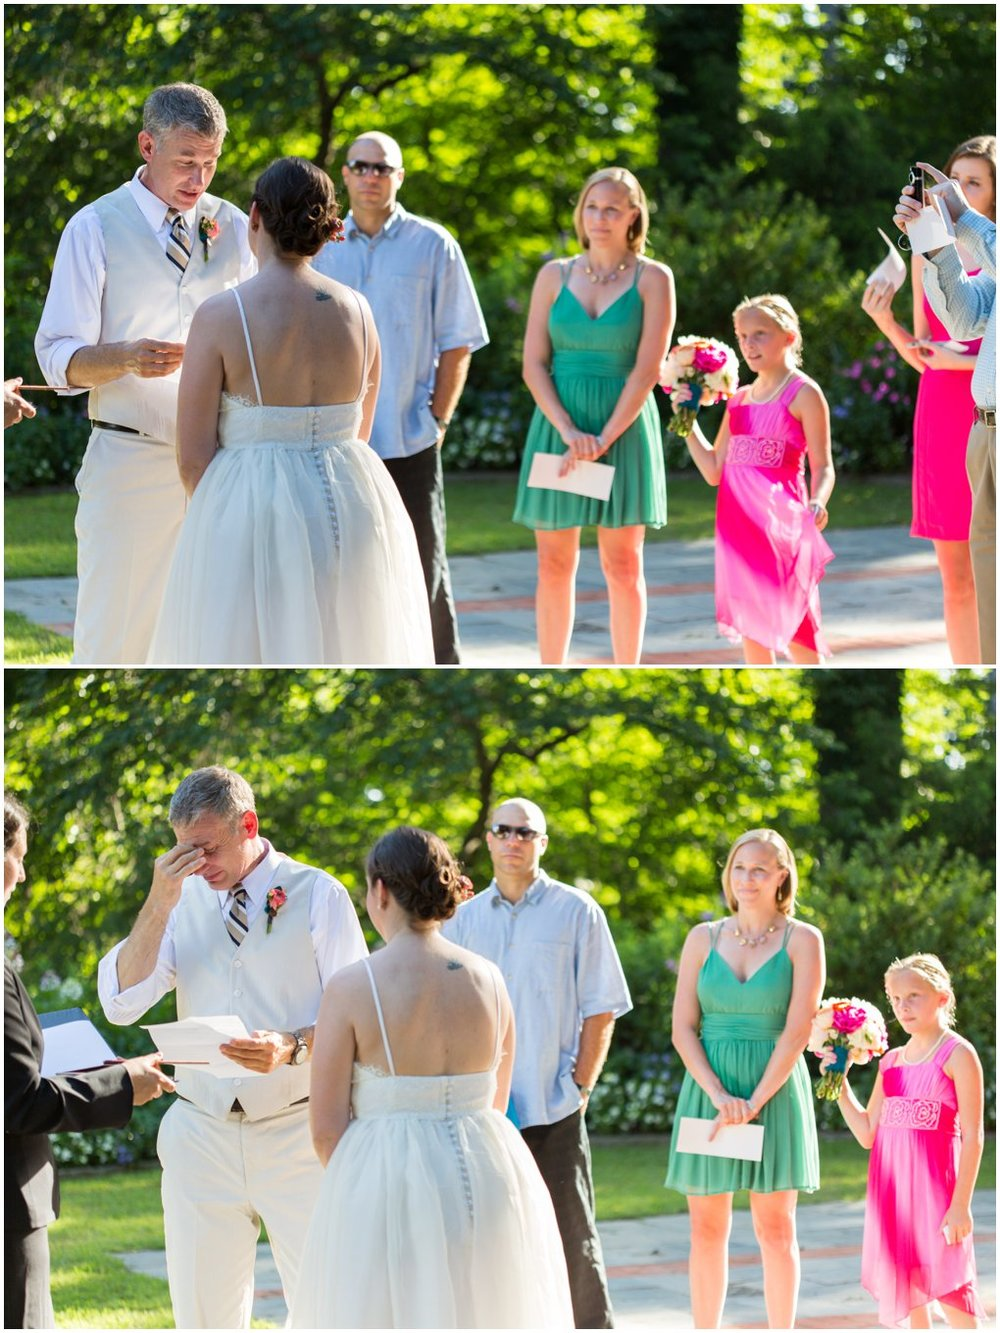 hey-wedding-2013-168.jpg